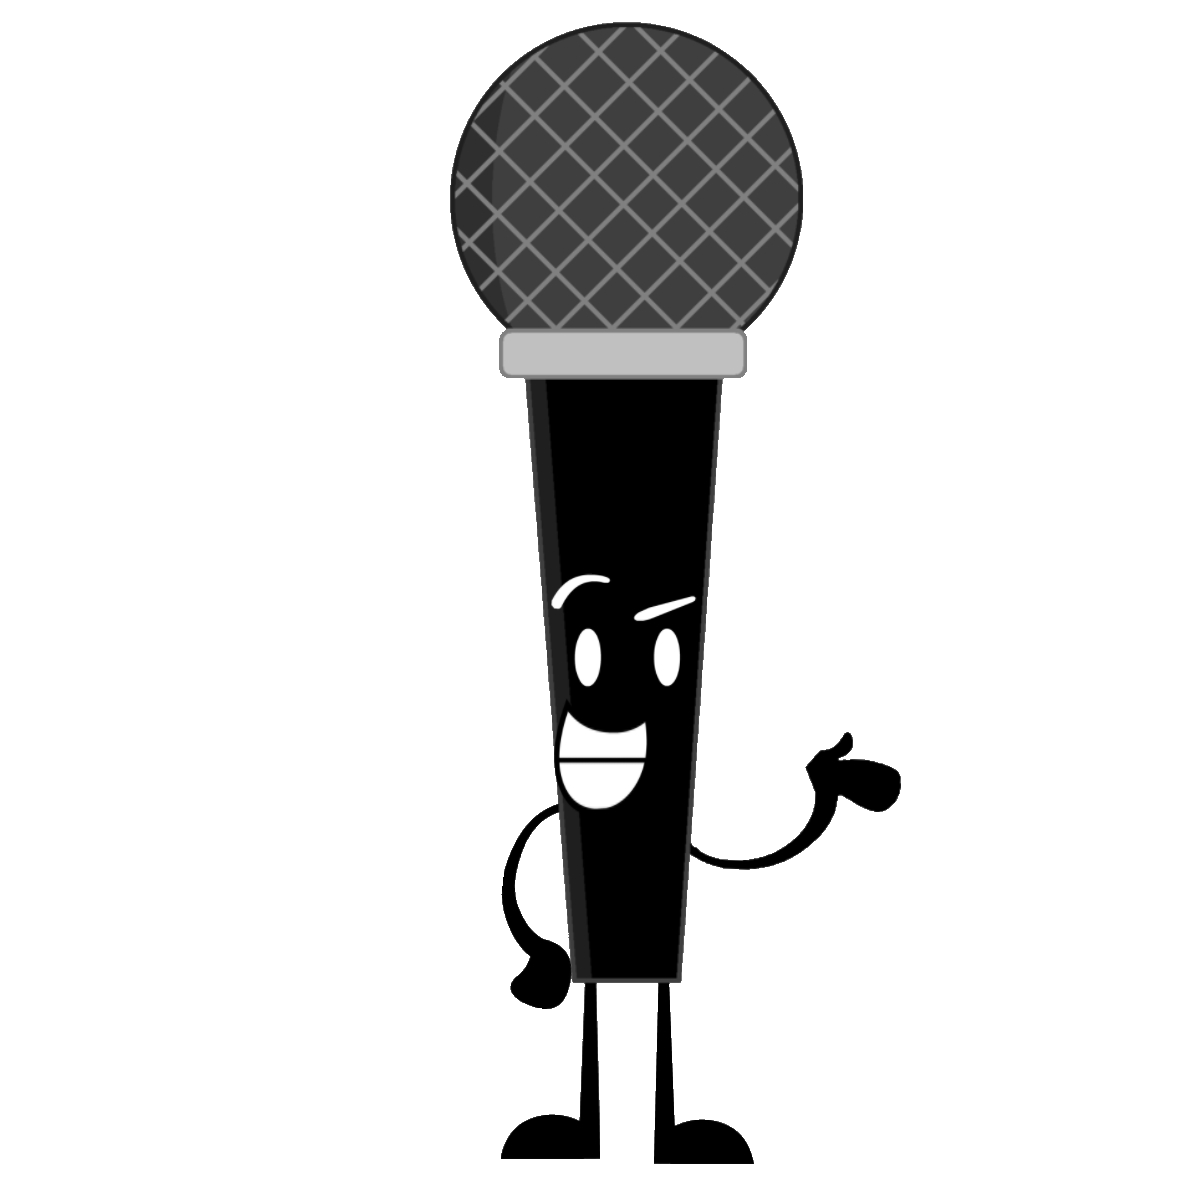 Png microphone. Image object oppose wikia